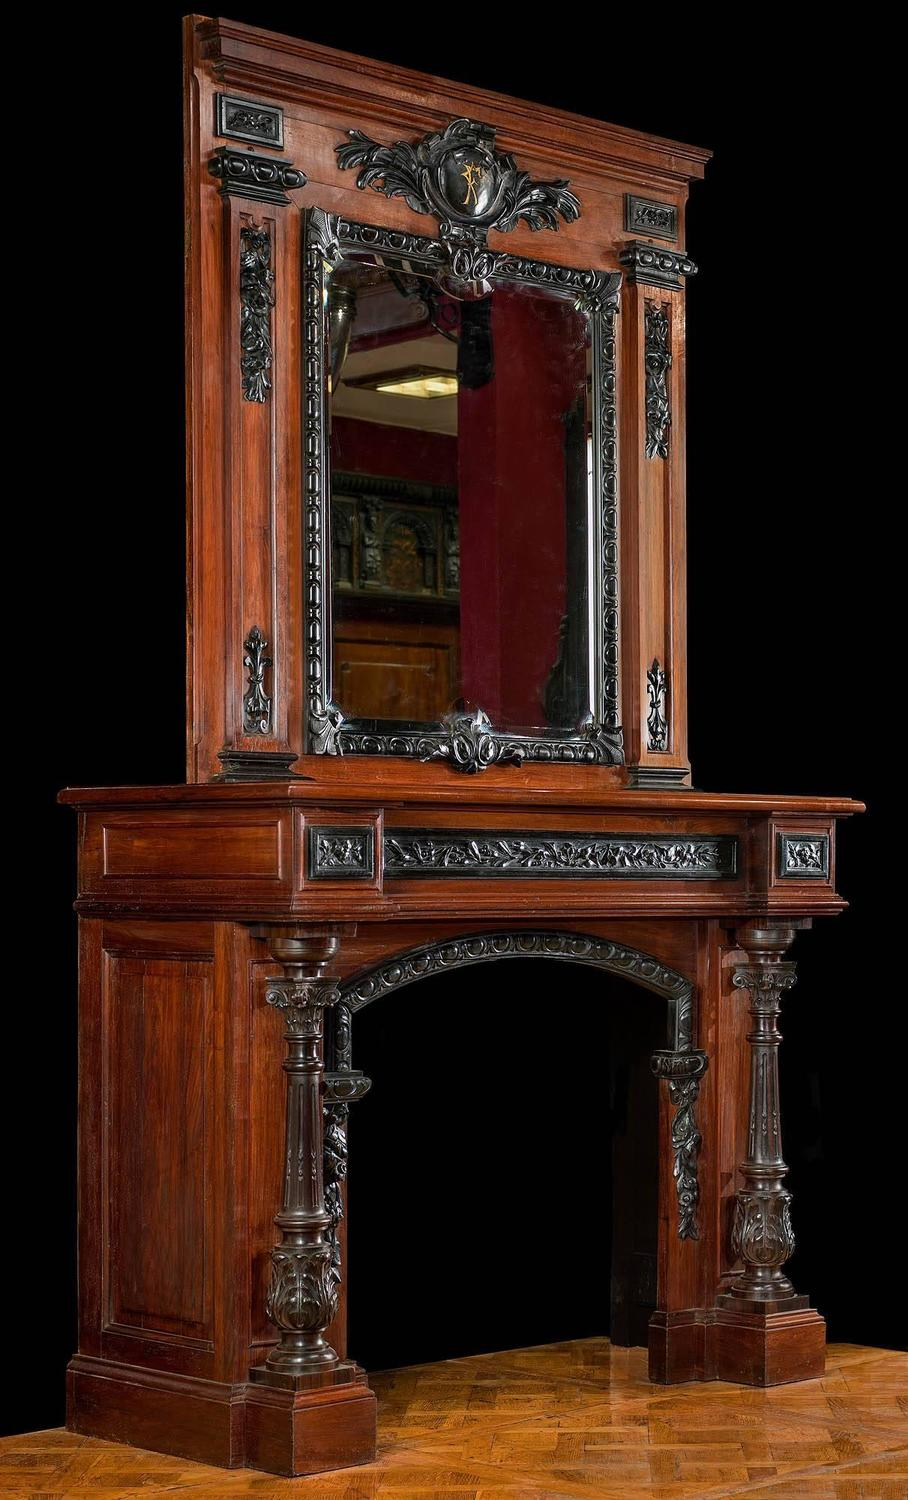 Rosewood And Ebony Antique Fireplace Mantel In The French